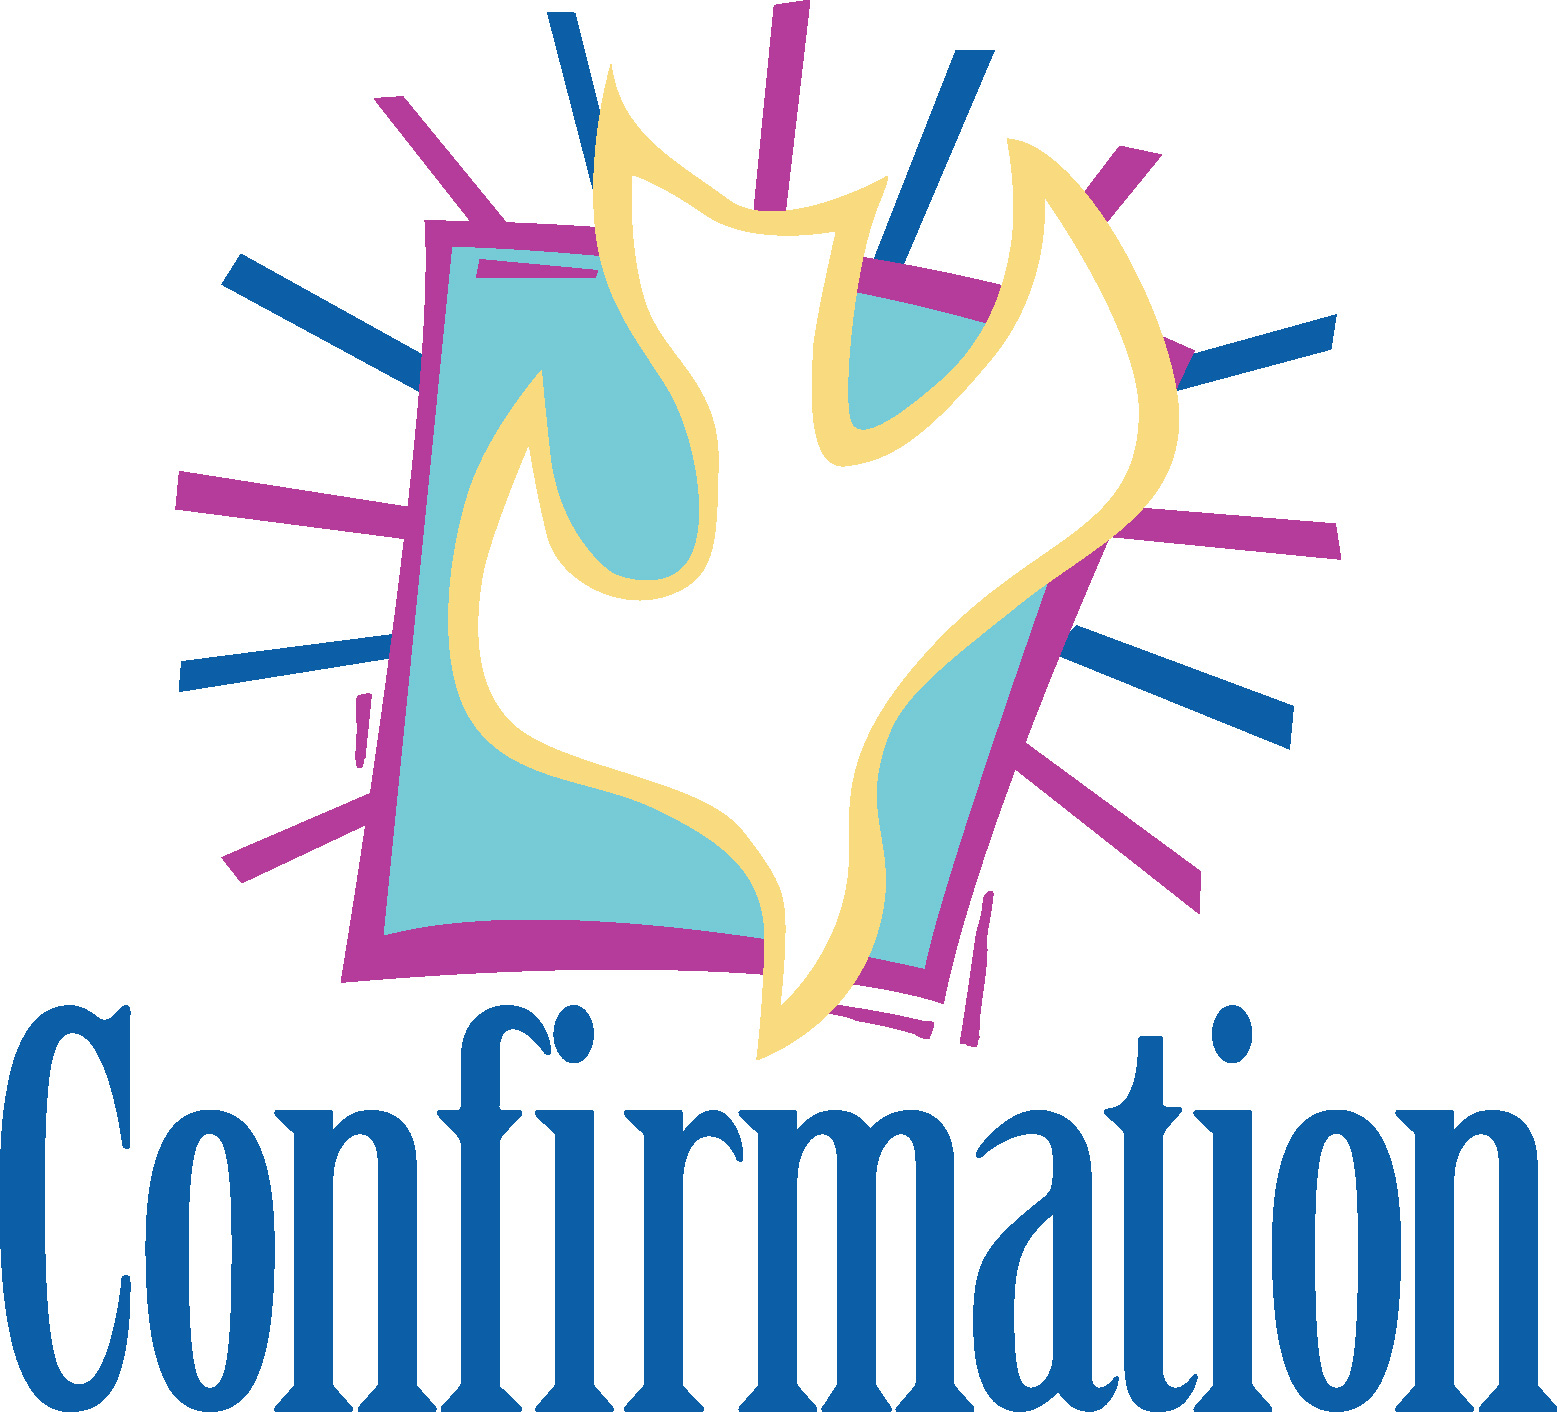 Church Confirmation Clip Art free image.